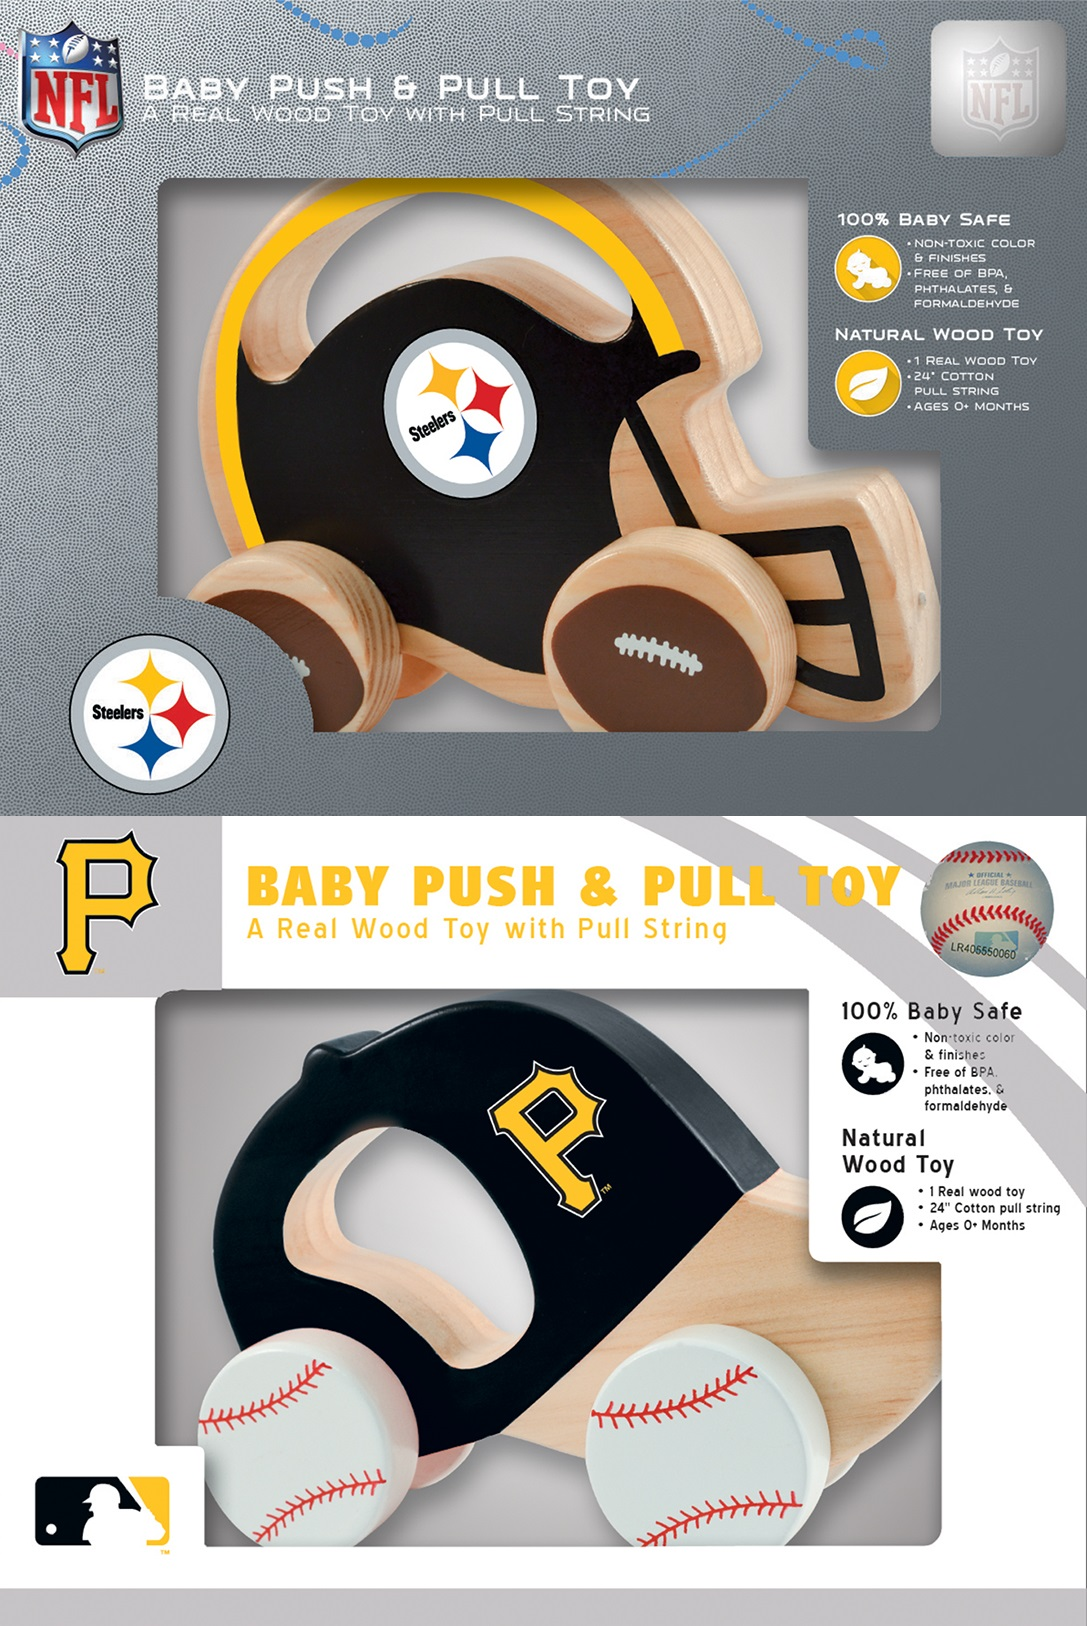 pittsburgh-baby-pull-toy-all.jpg